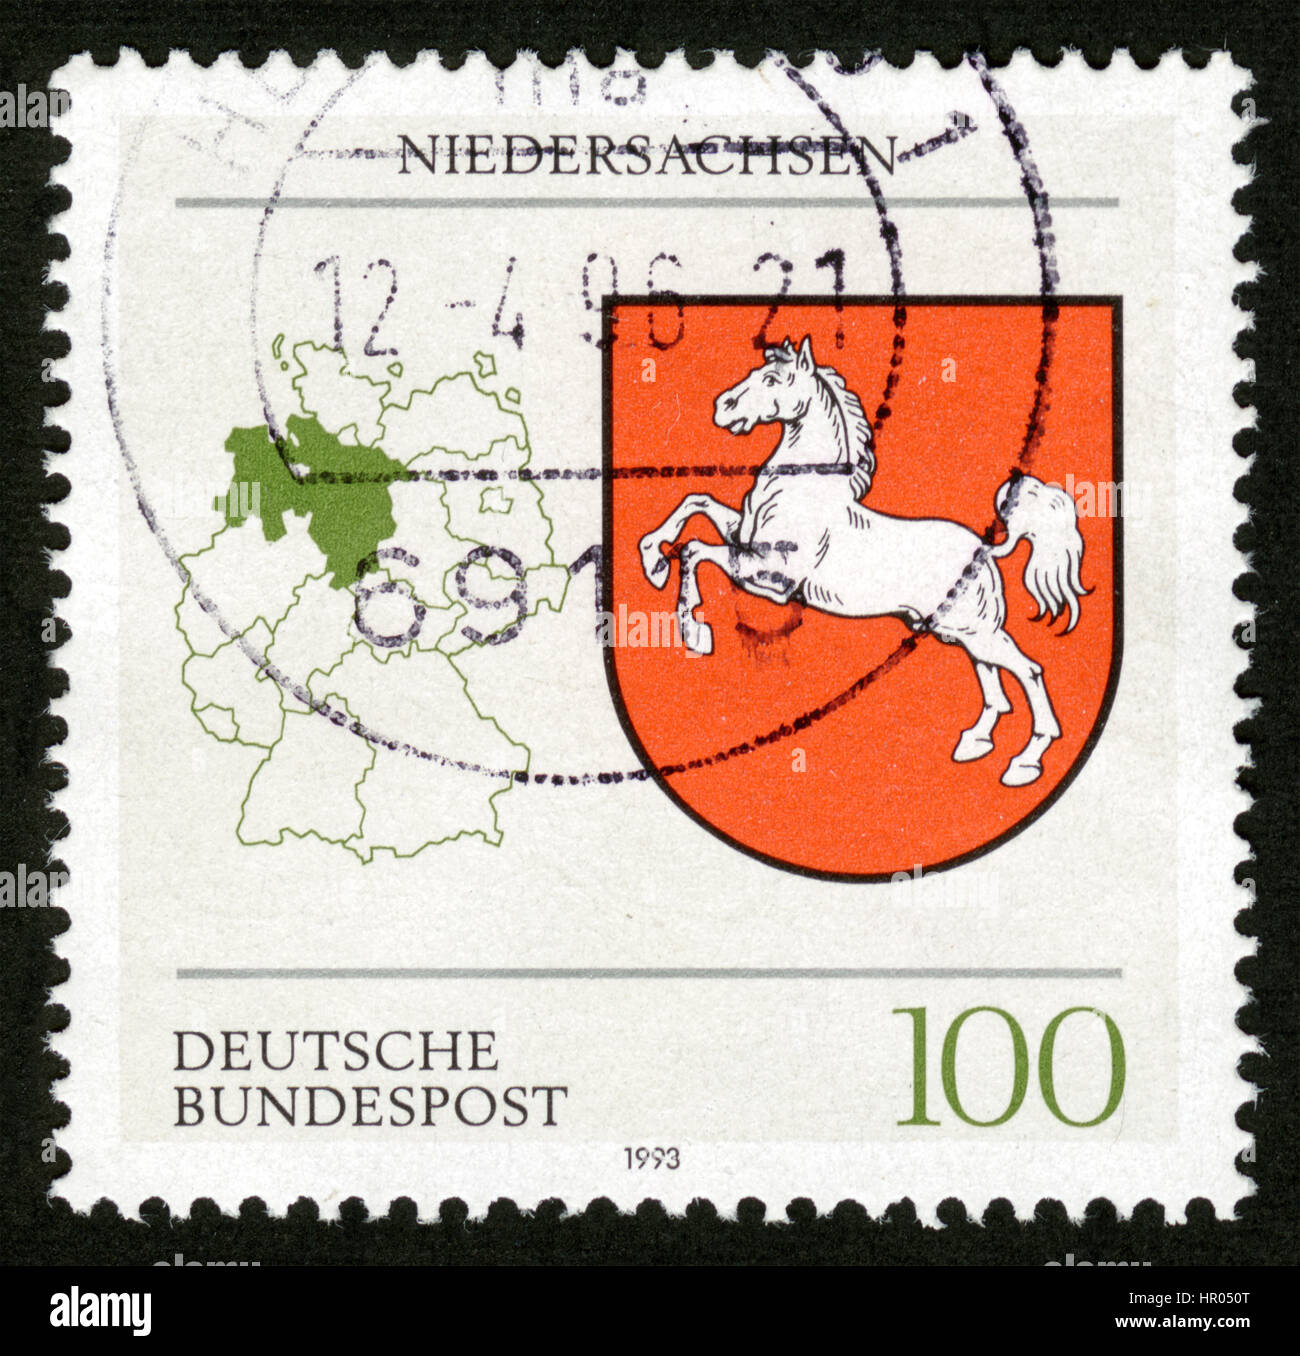 Germany postage stamps - Stock Image